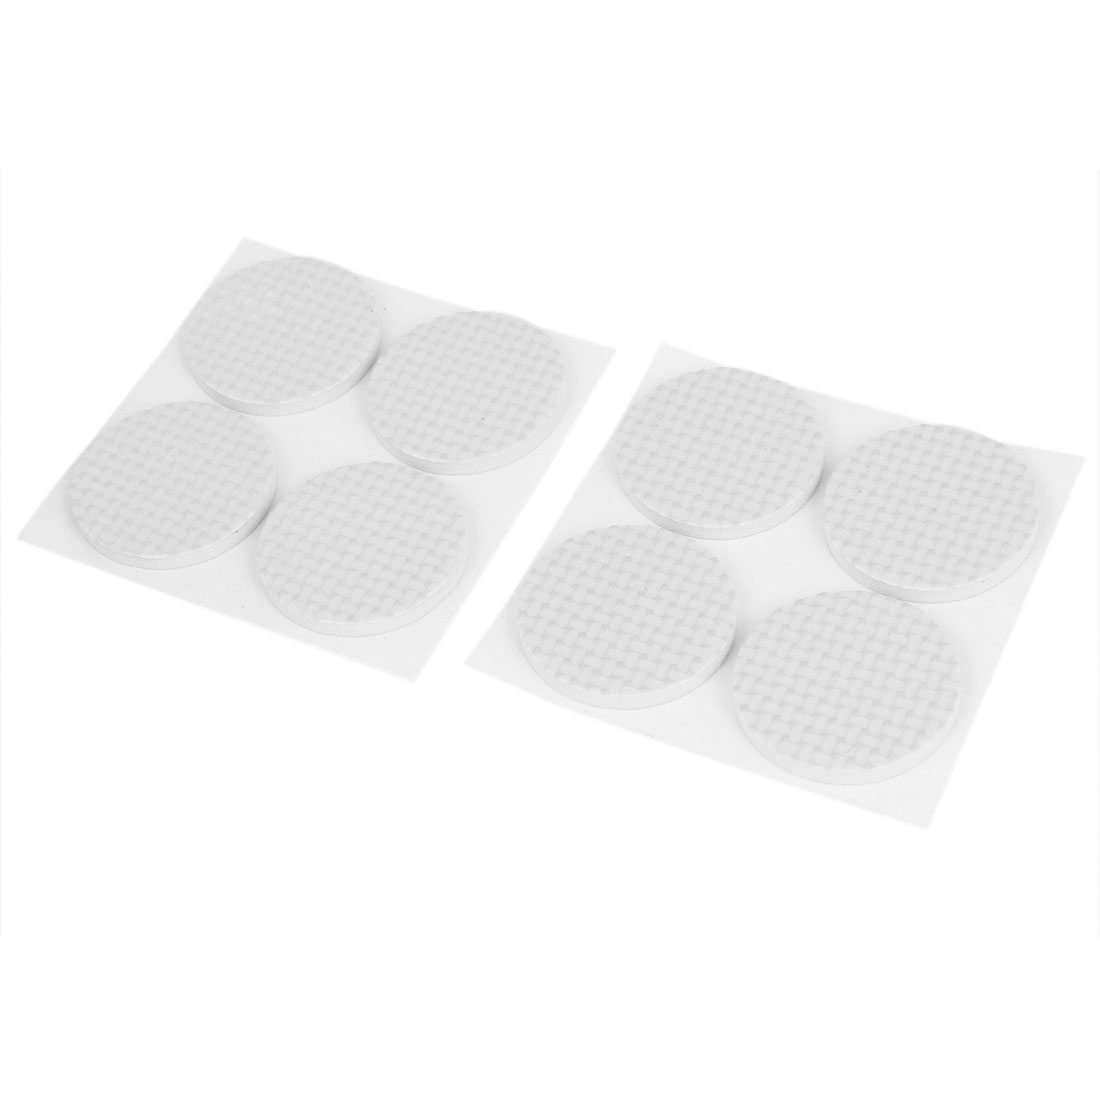 Furniture Floor Protection Cushion Self Adhesive Protector Pads 38mm Dia. 8pcs